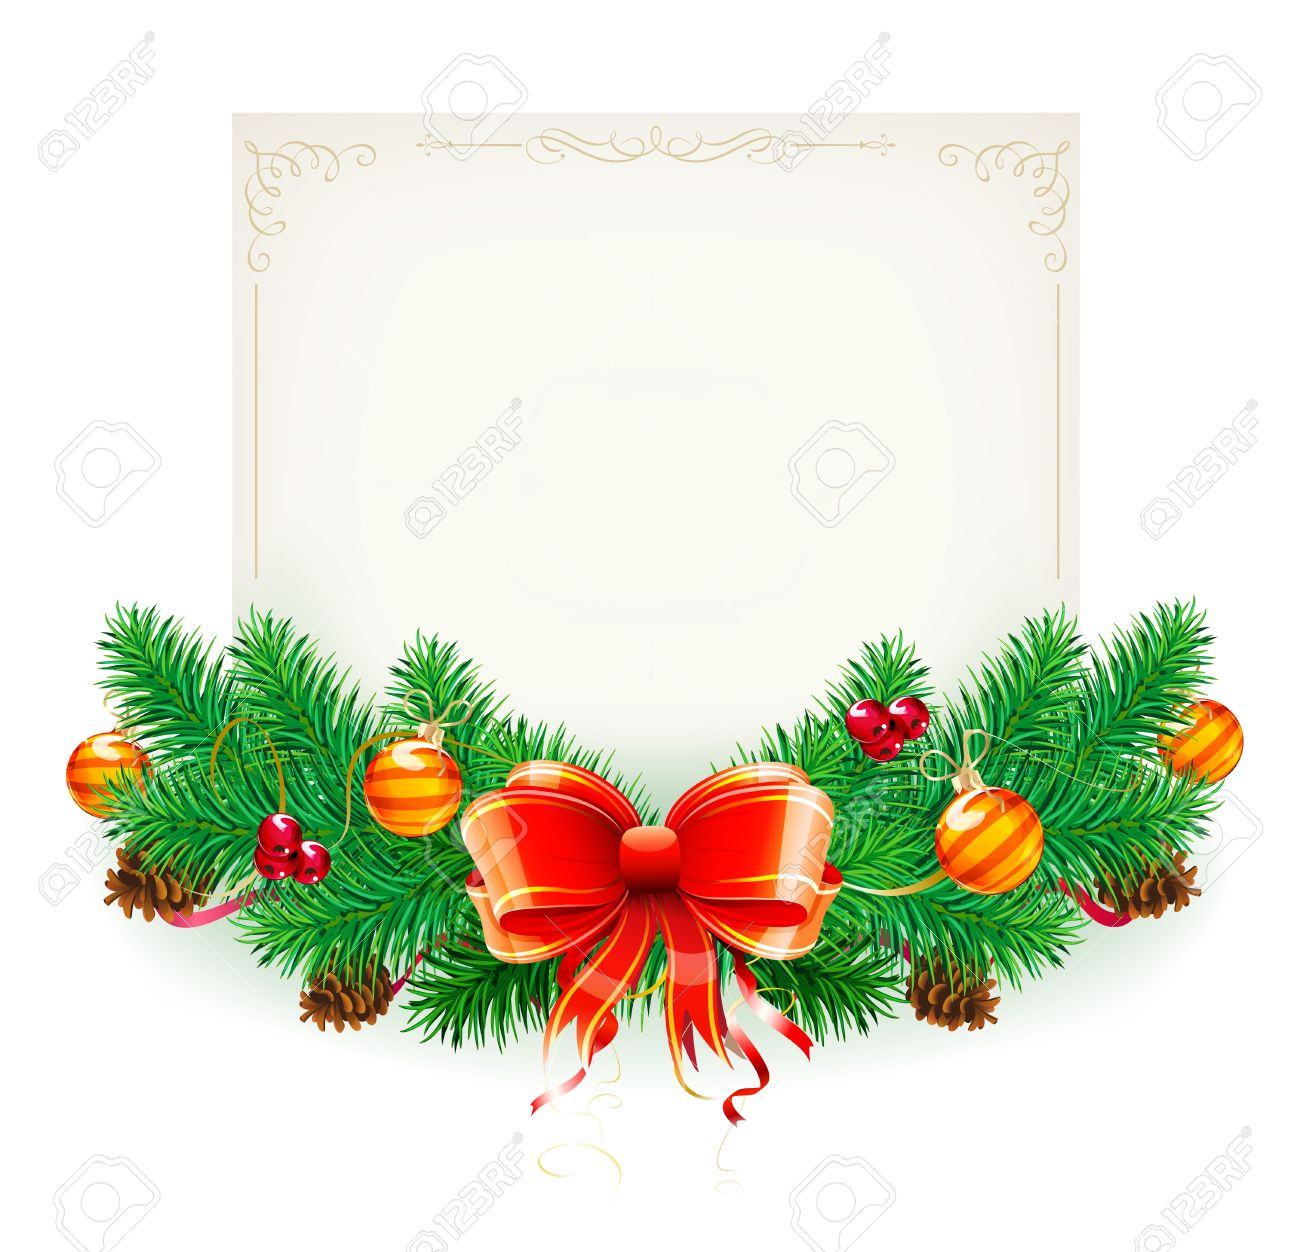 Vector illustration of Christmas decorative frame evergreen branches and bow Stock Vector - 10847219